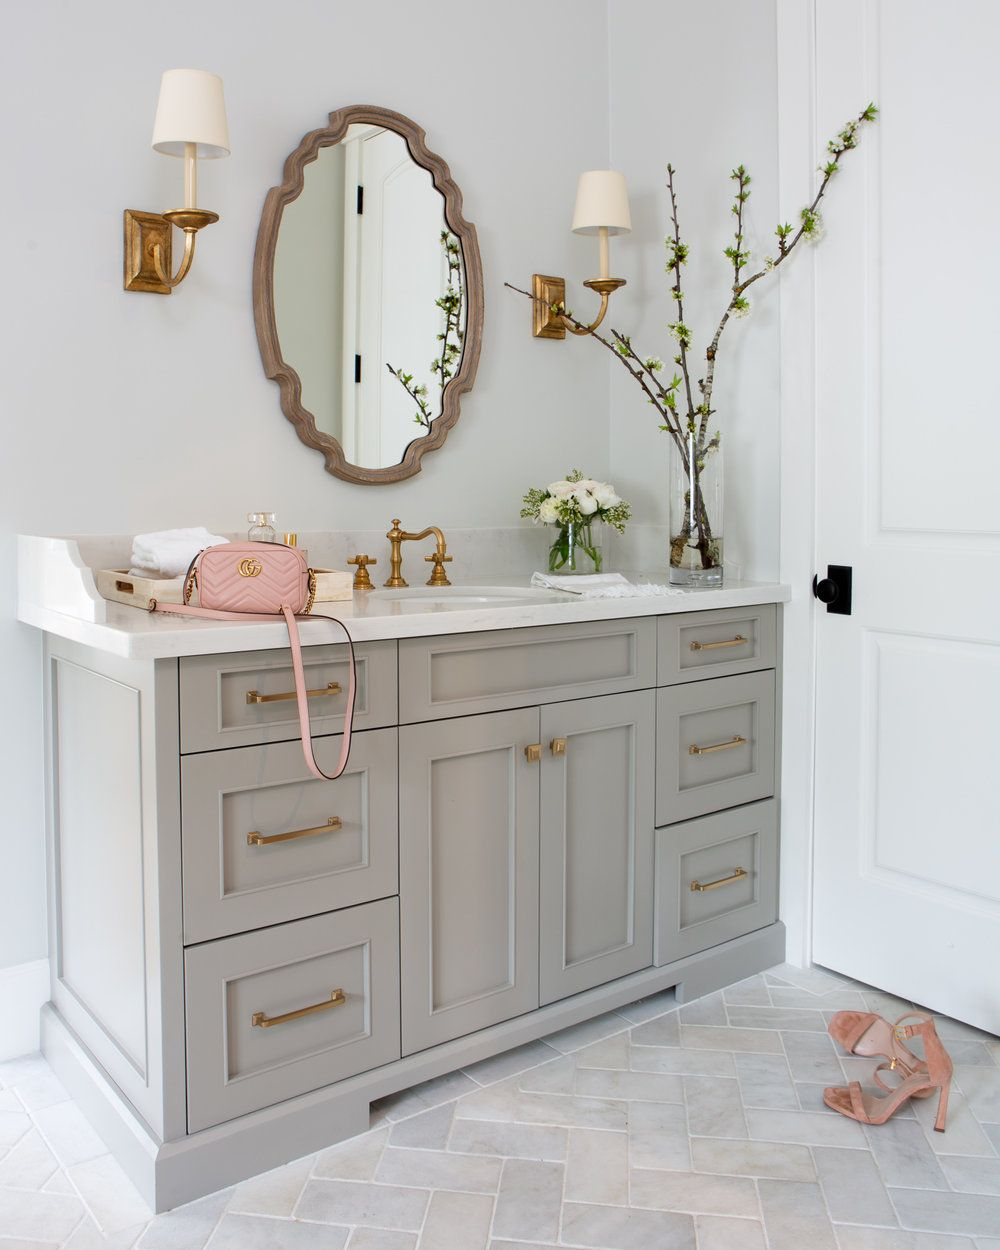 Room of the Week: Classic Master Bathroom with a Hint of Drama